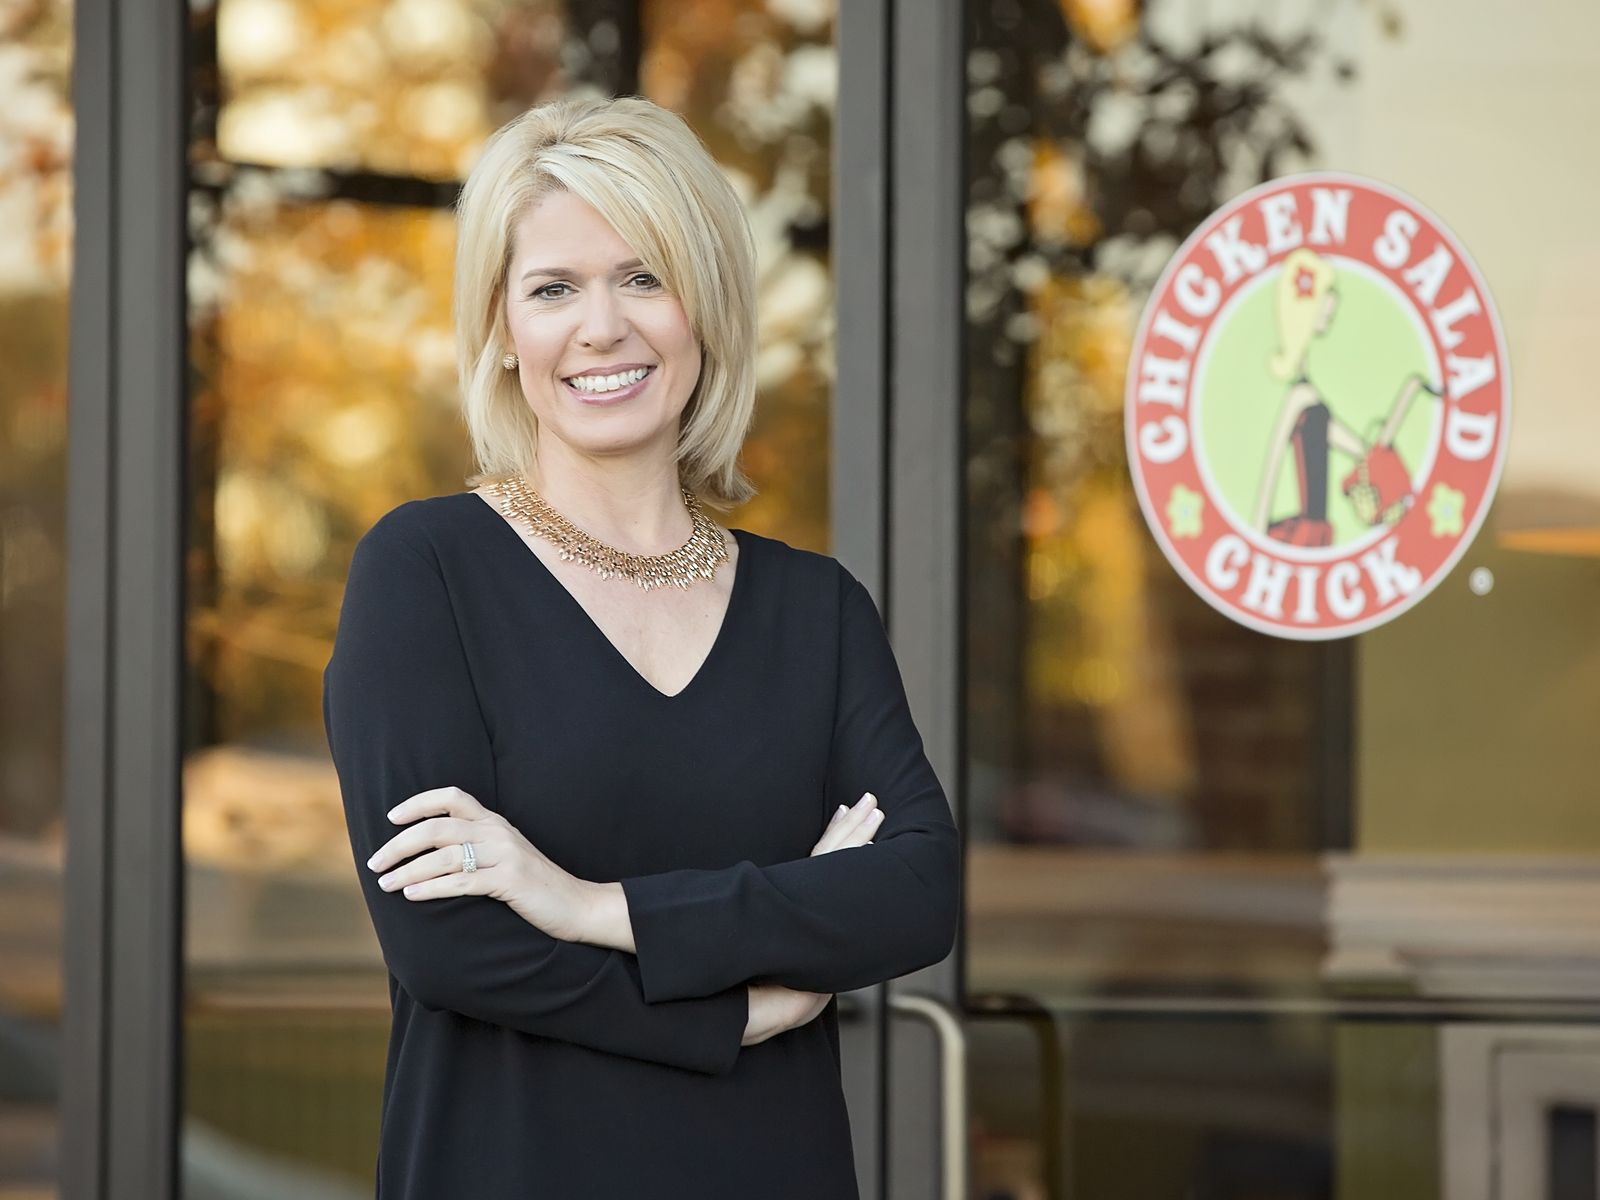 Chicken Salad Chick To Debut In Illinois With New Restaurant In Edwardsville